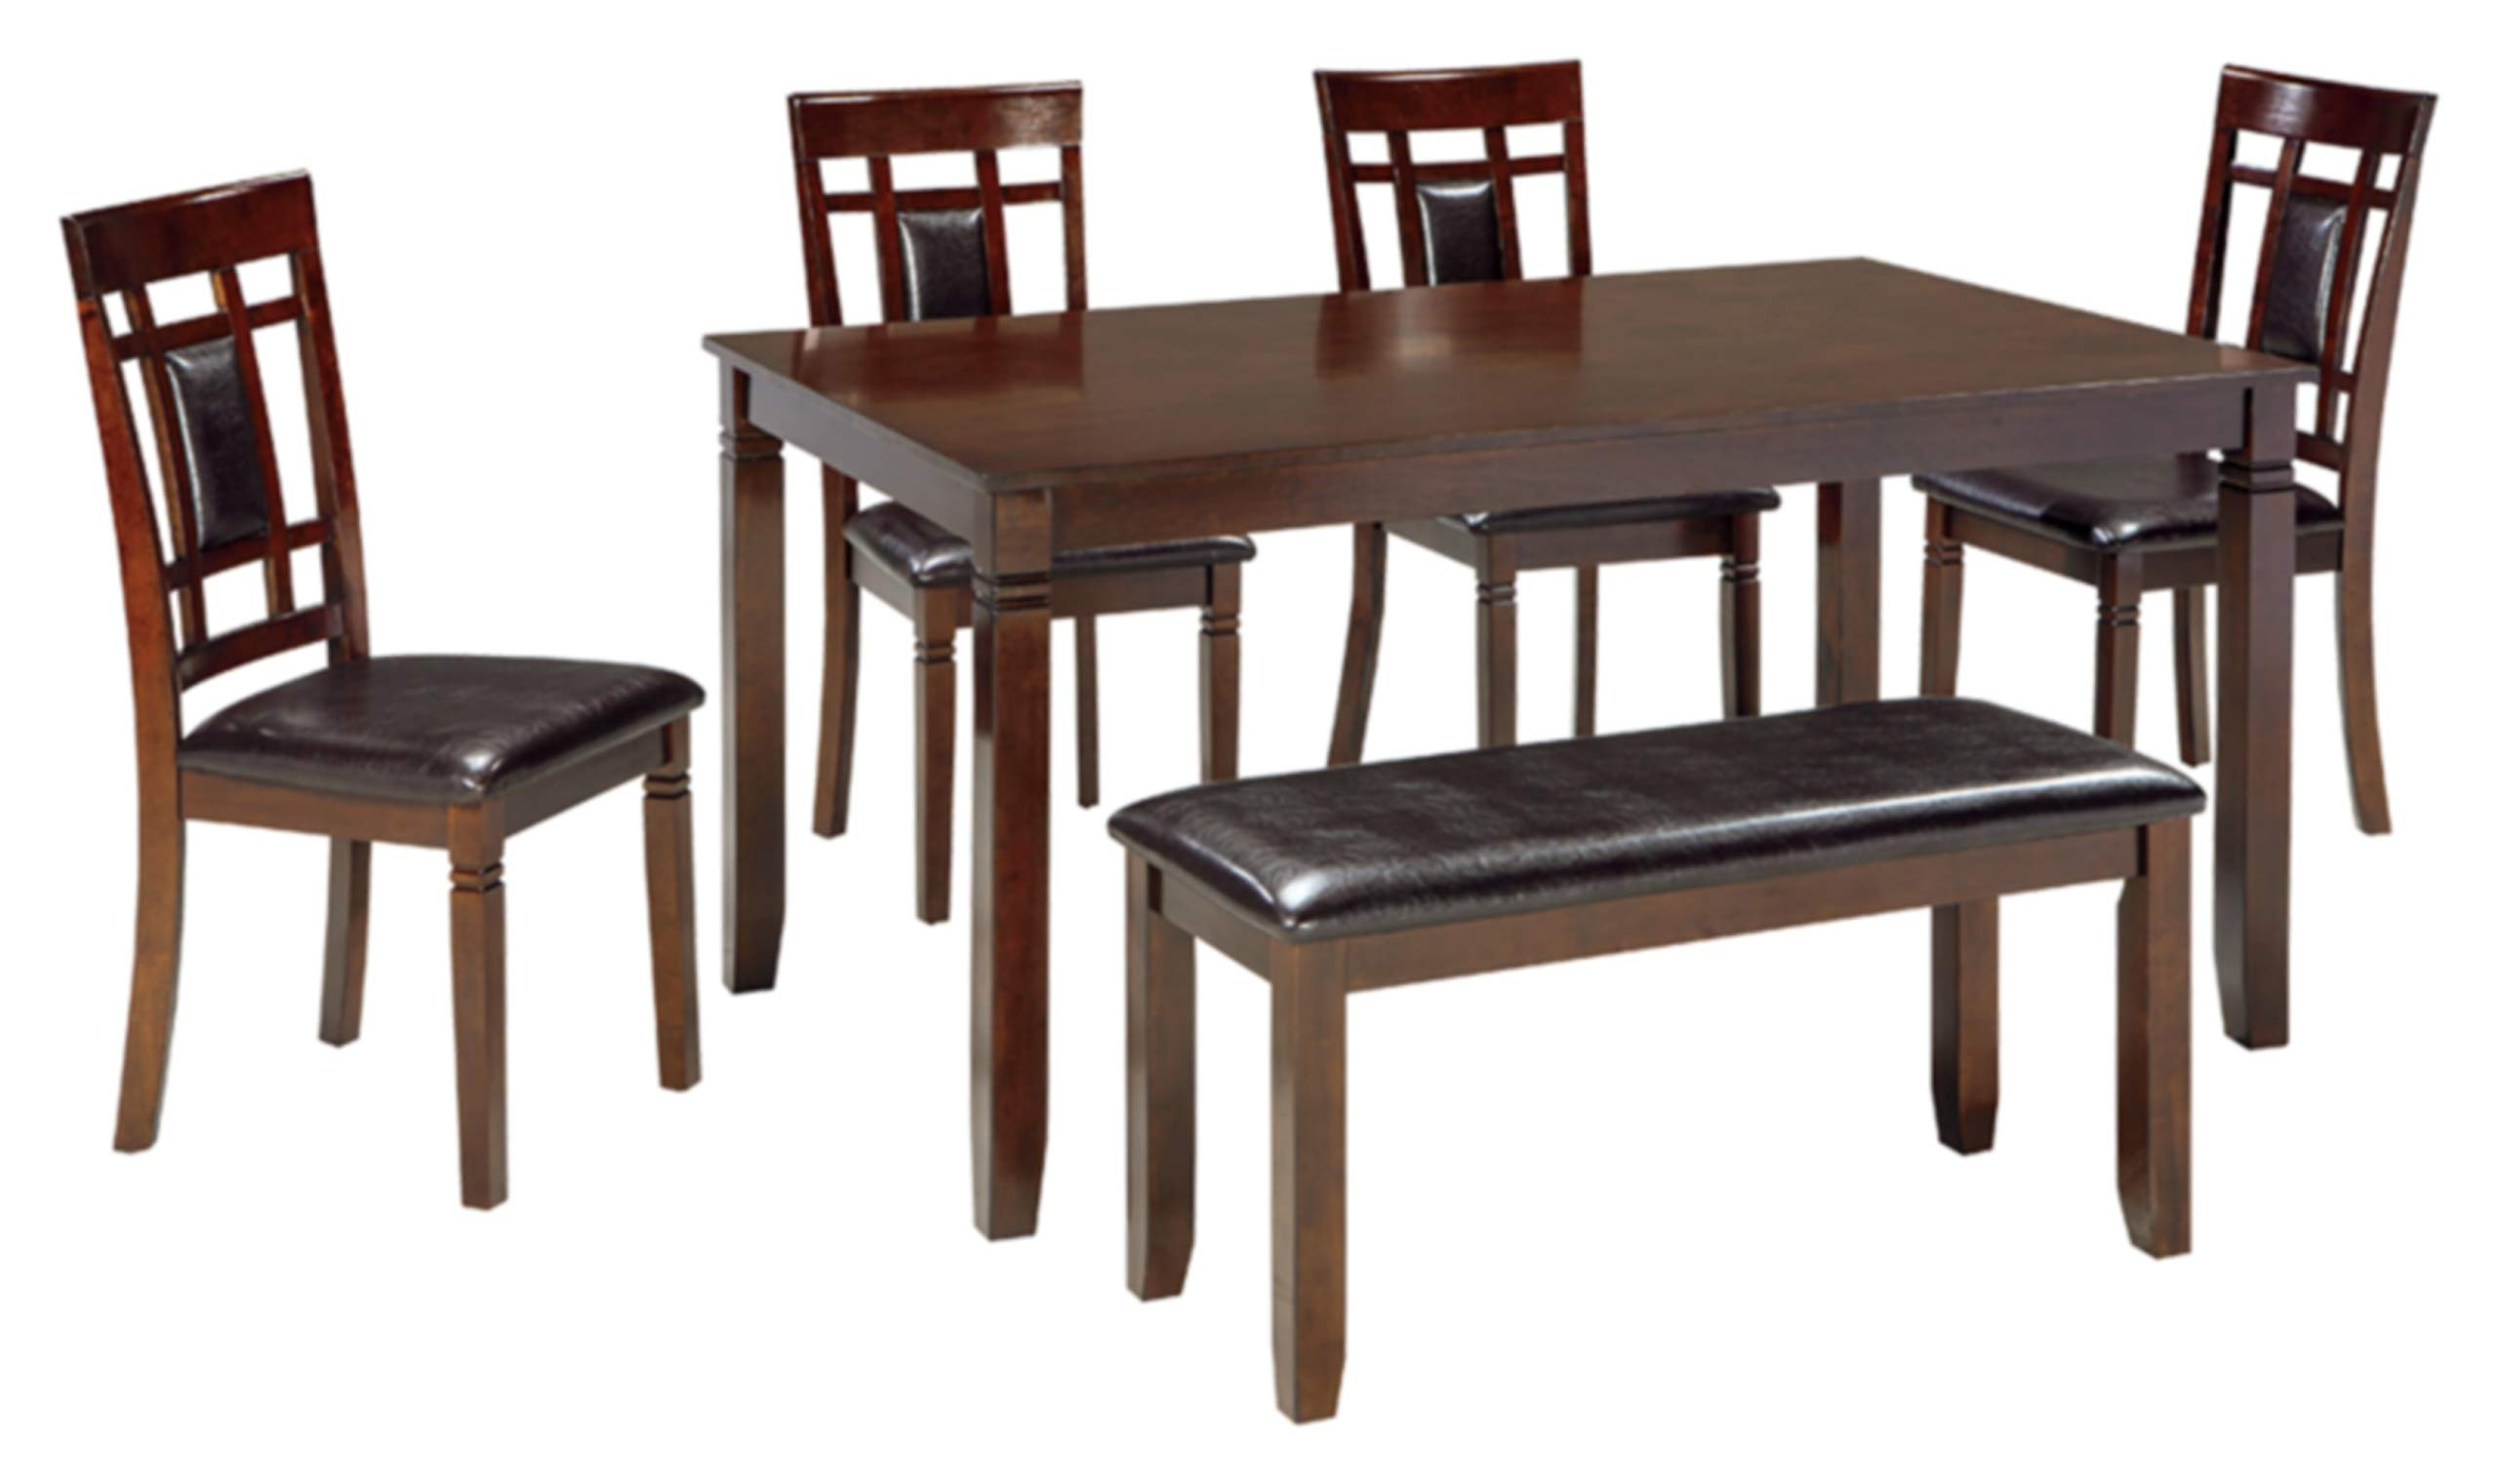 Ashley Furniture Signature Design - Bennox Dining Room Table and Chairs with Bench (Set of 6) - Brown by Signature Design by Ashley